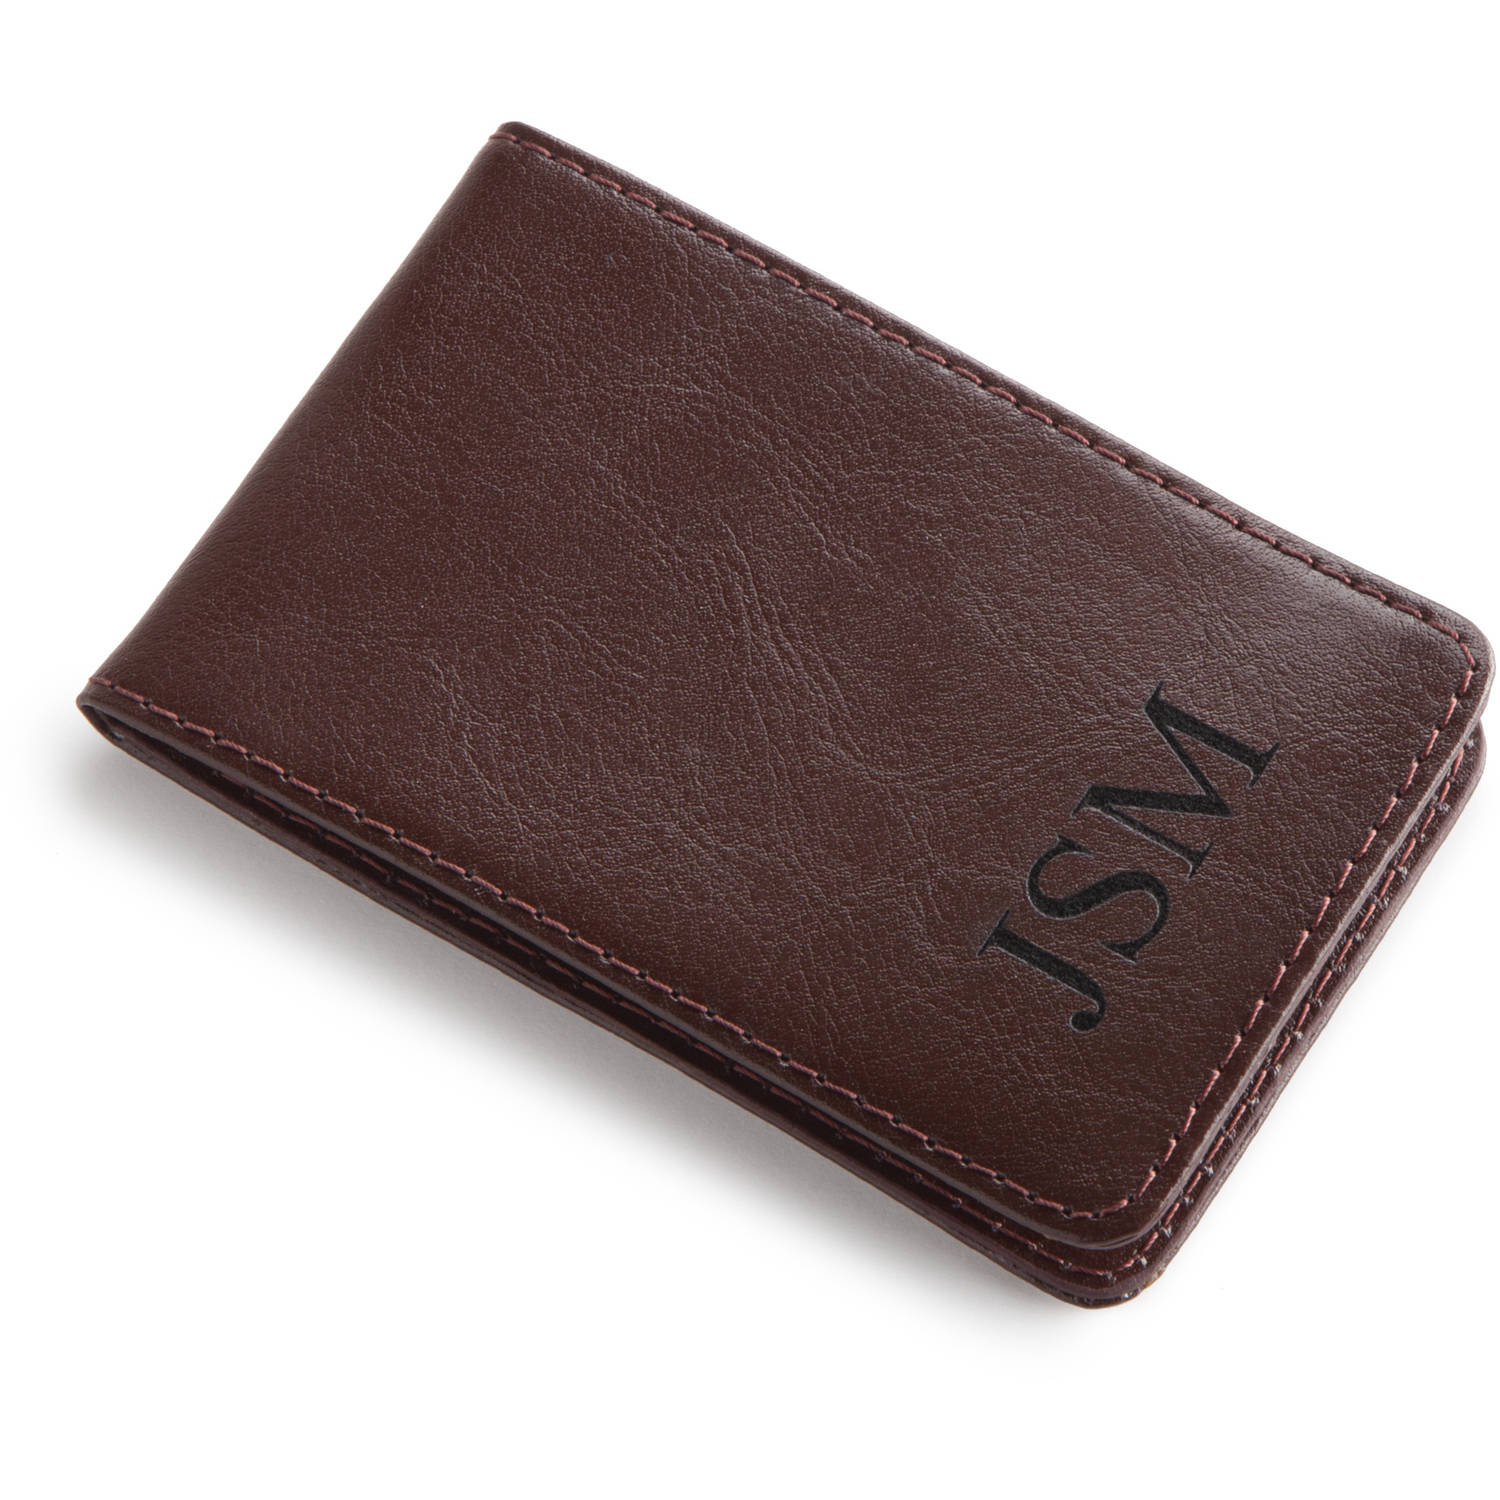 Personalized Leather Billfold Case with Money Clip